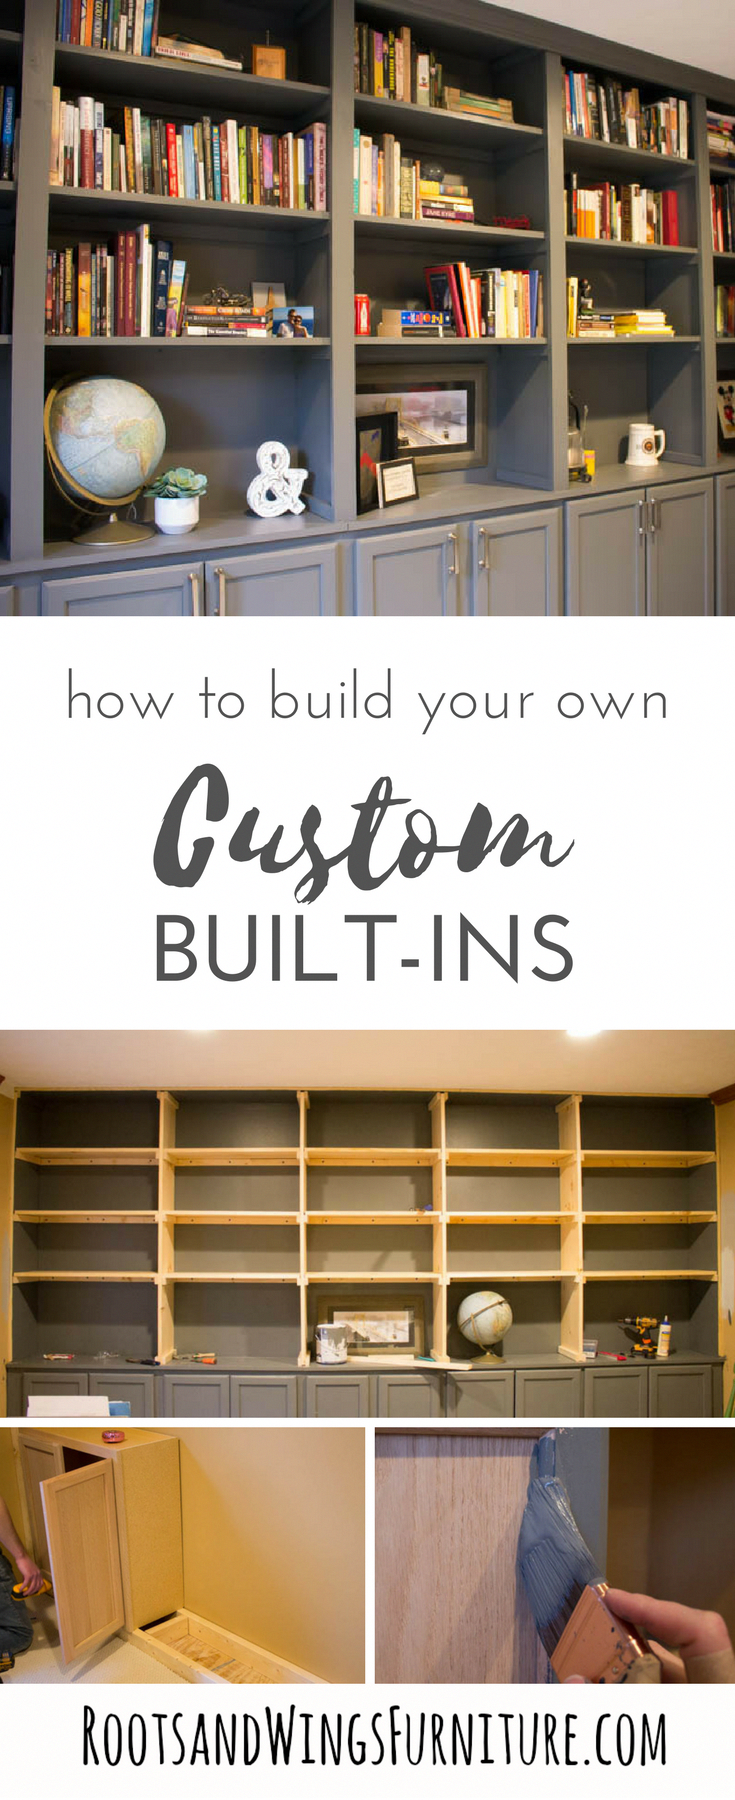 Diy Wall To Wall Book Cases Use Kitchen Cabinets As A Base And